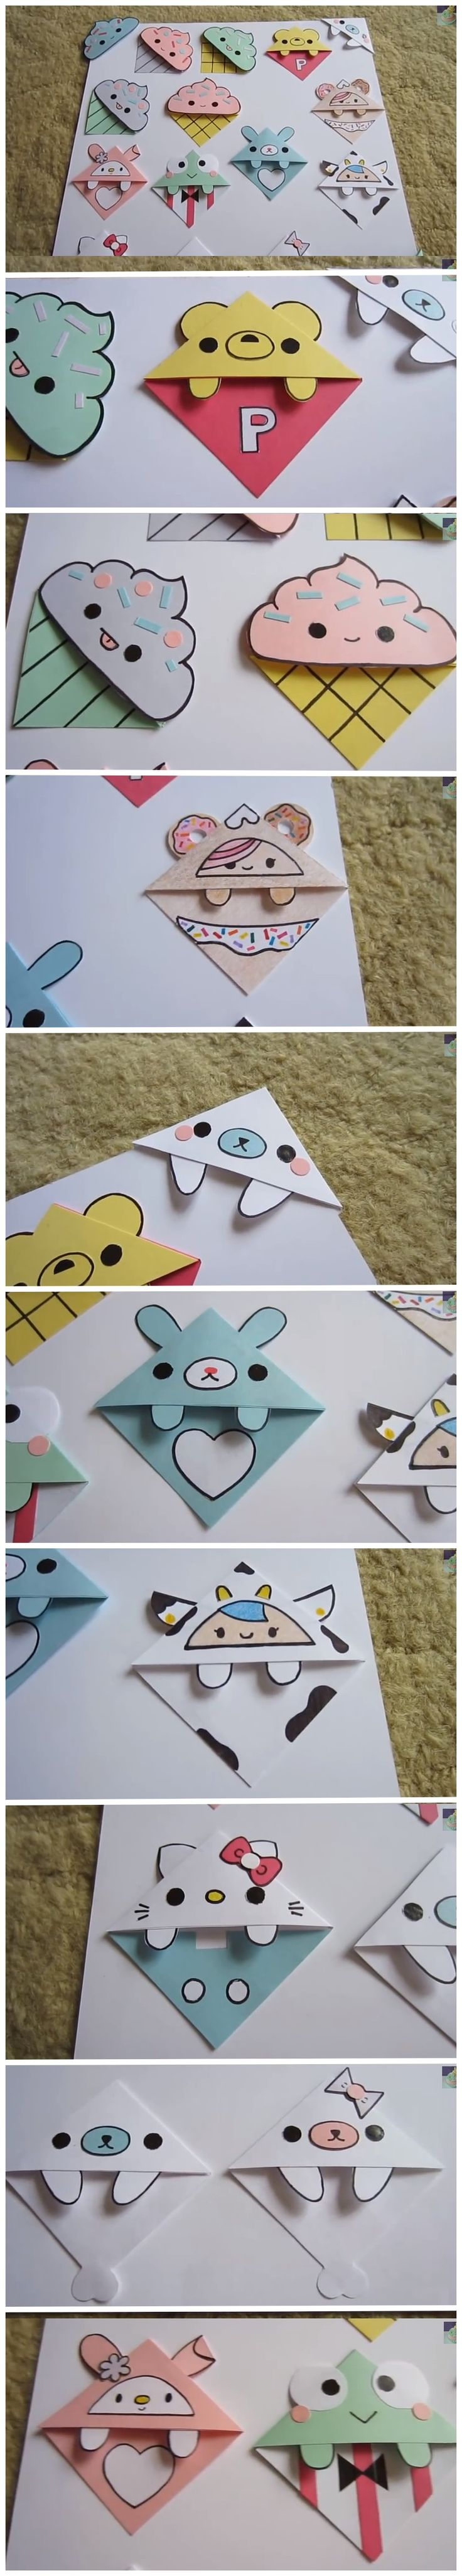 DIY Paper Bookmarks! Cute!